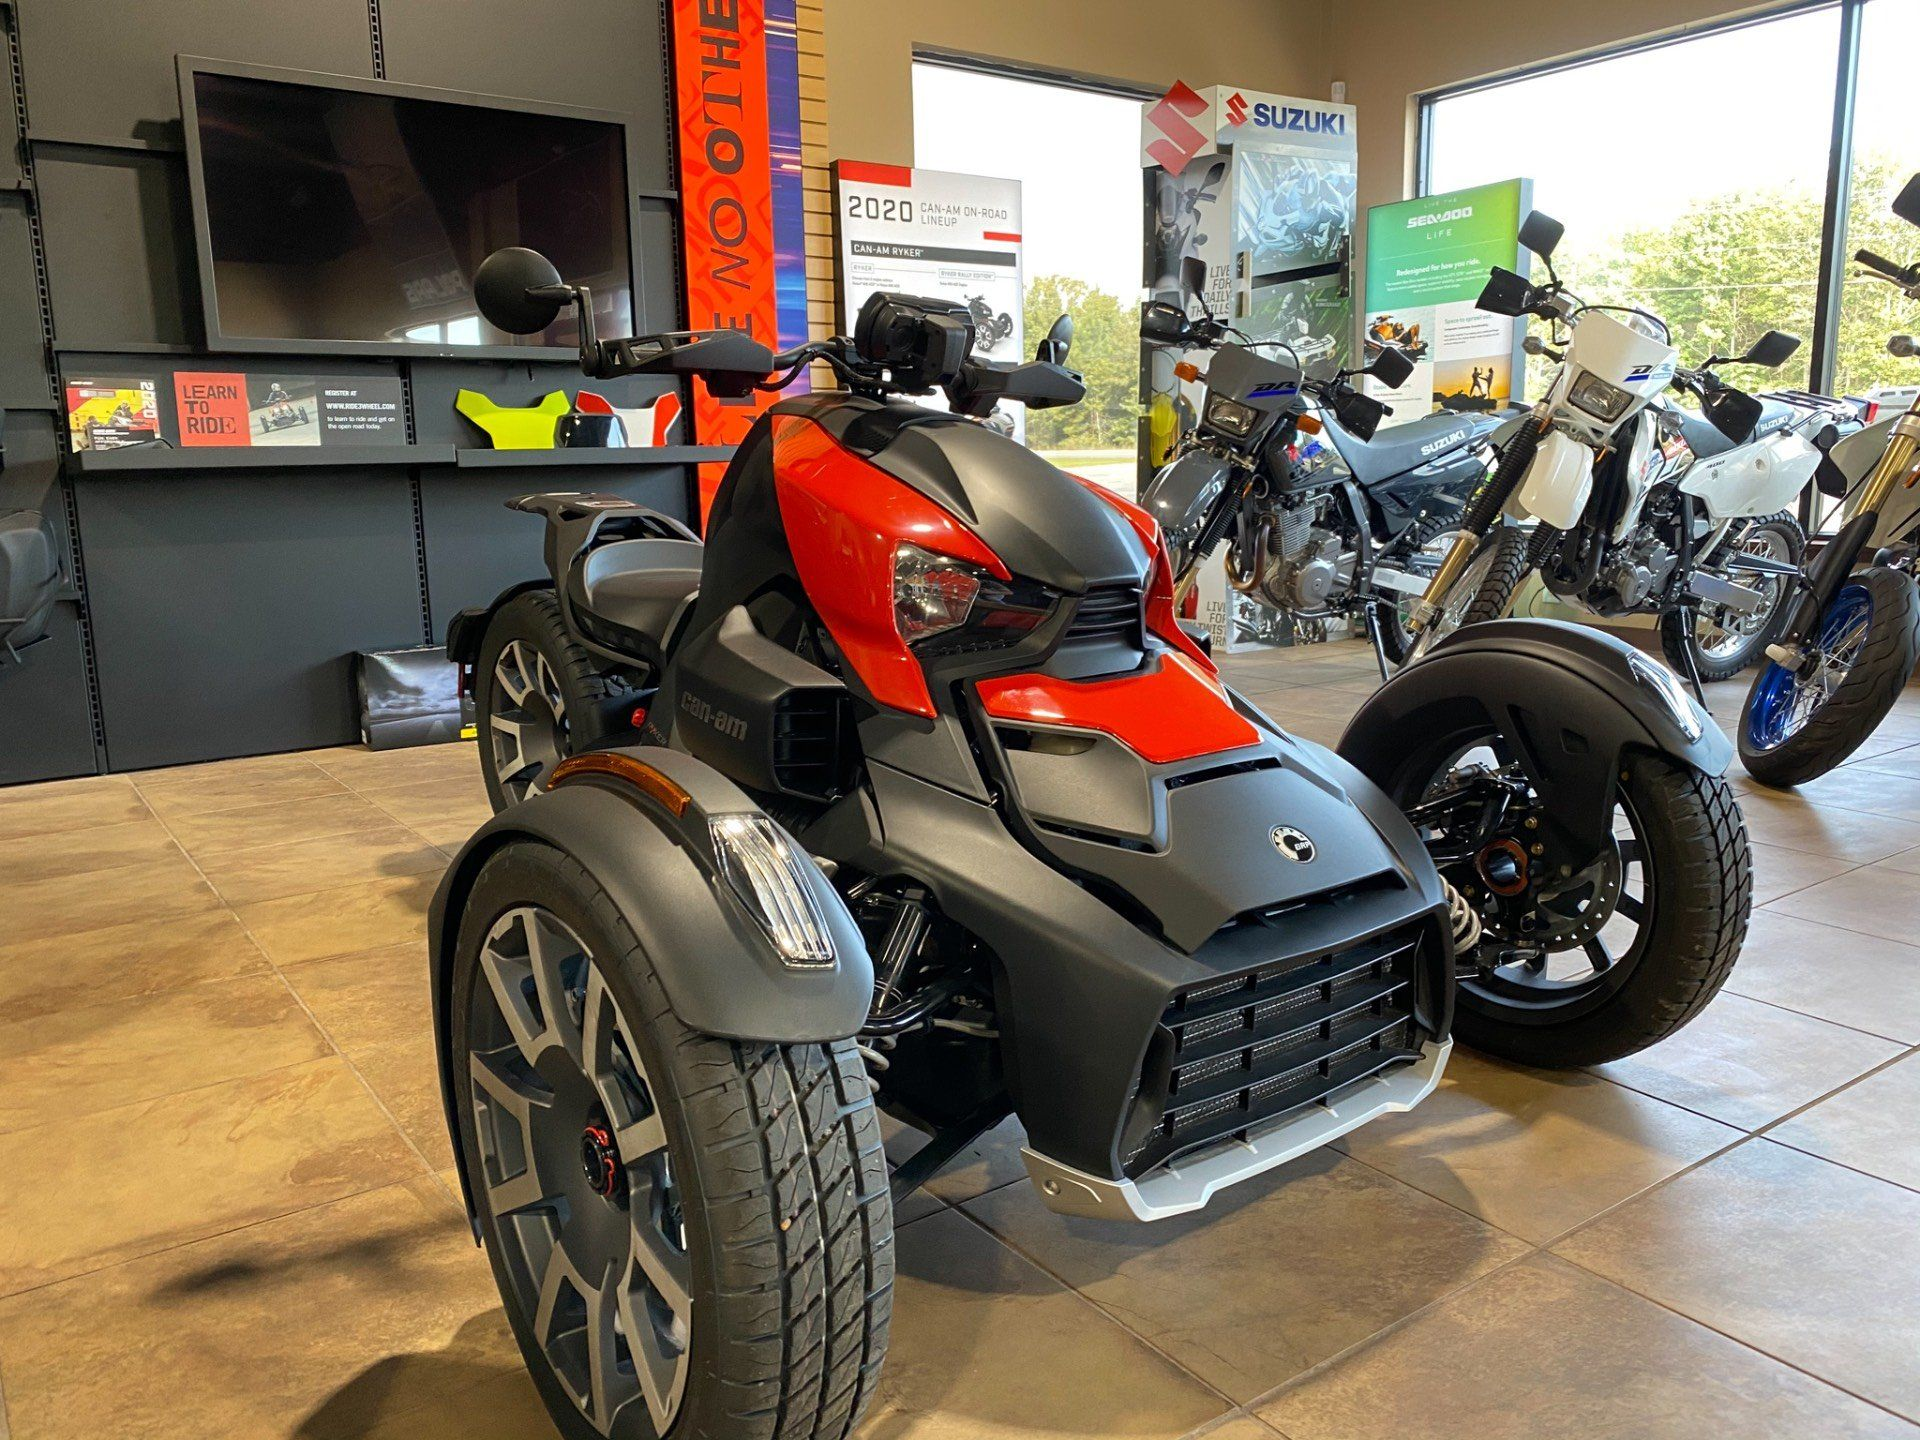 2020 Can-Am RYKER 900 RALLY ACE in Statesboro, Georgia - Photo 1